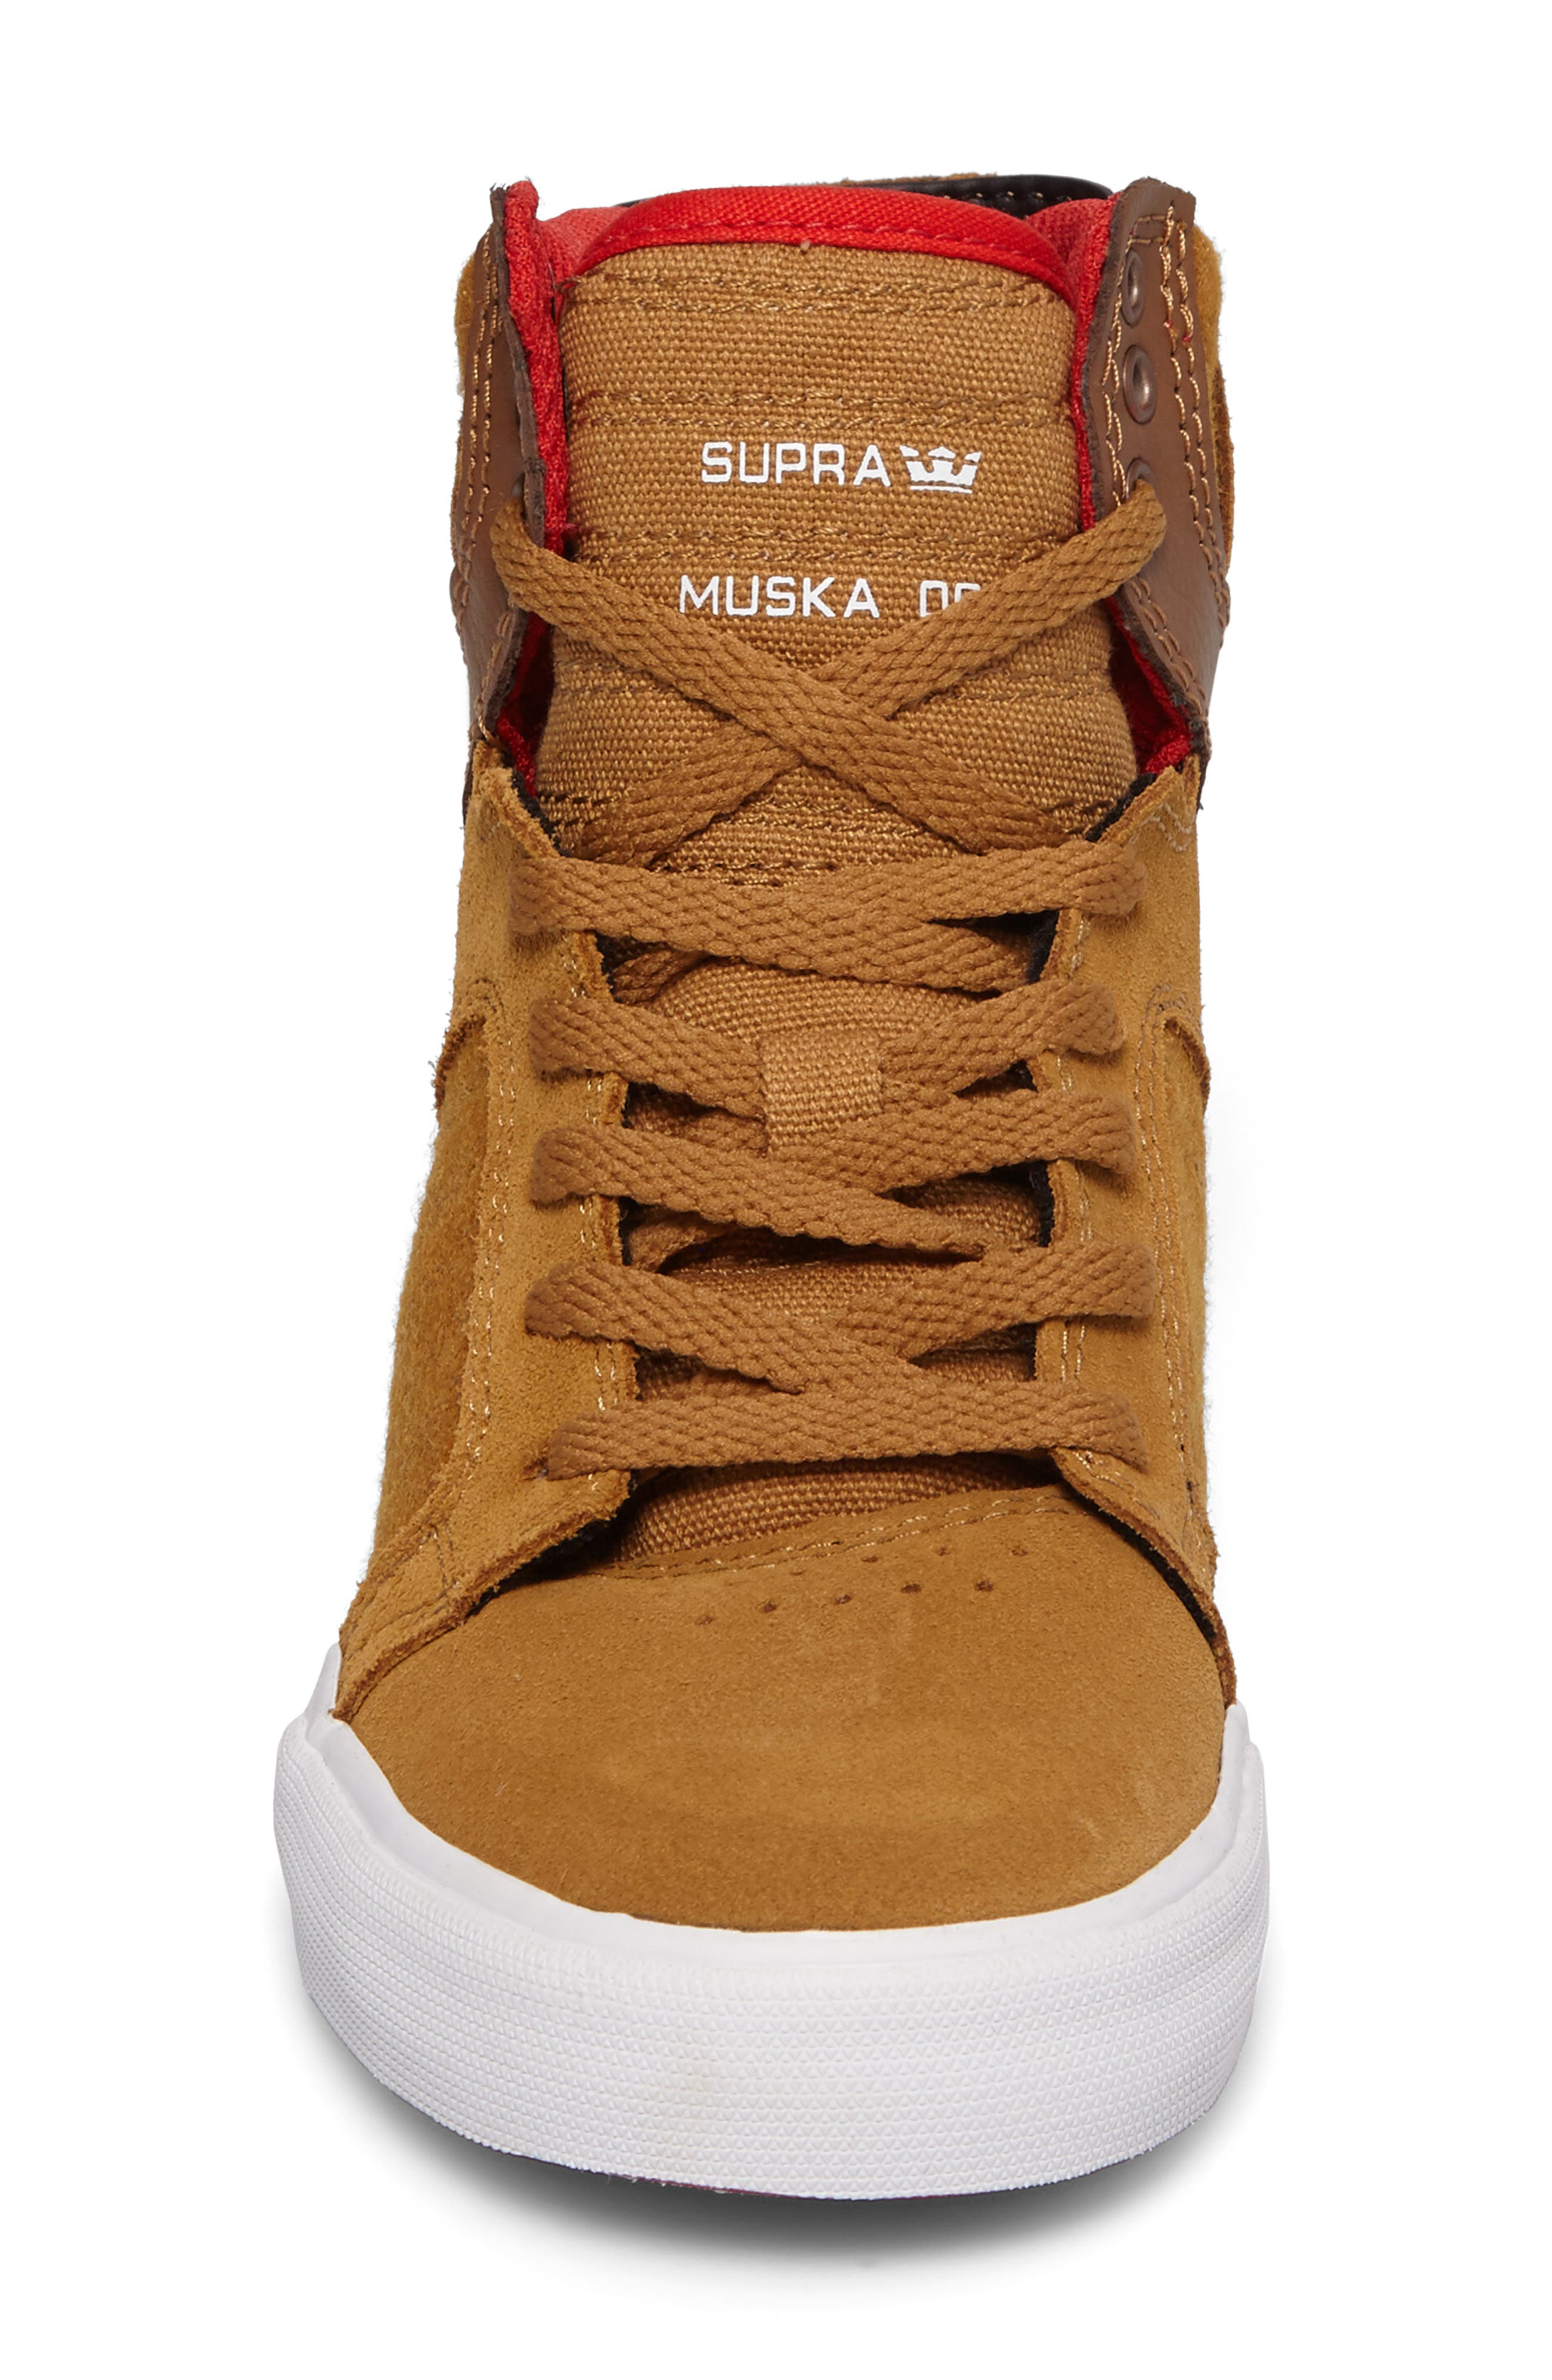 Skytop High Top Sneaker,                             Alternate thumbnail 4, color,                             257